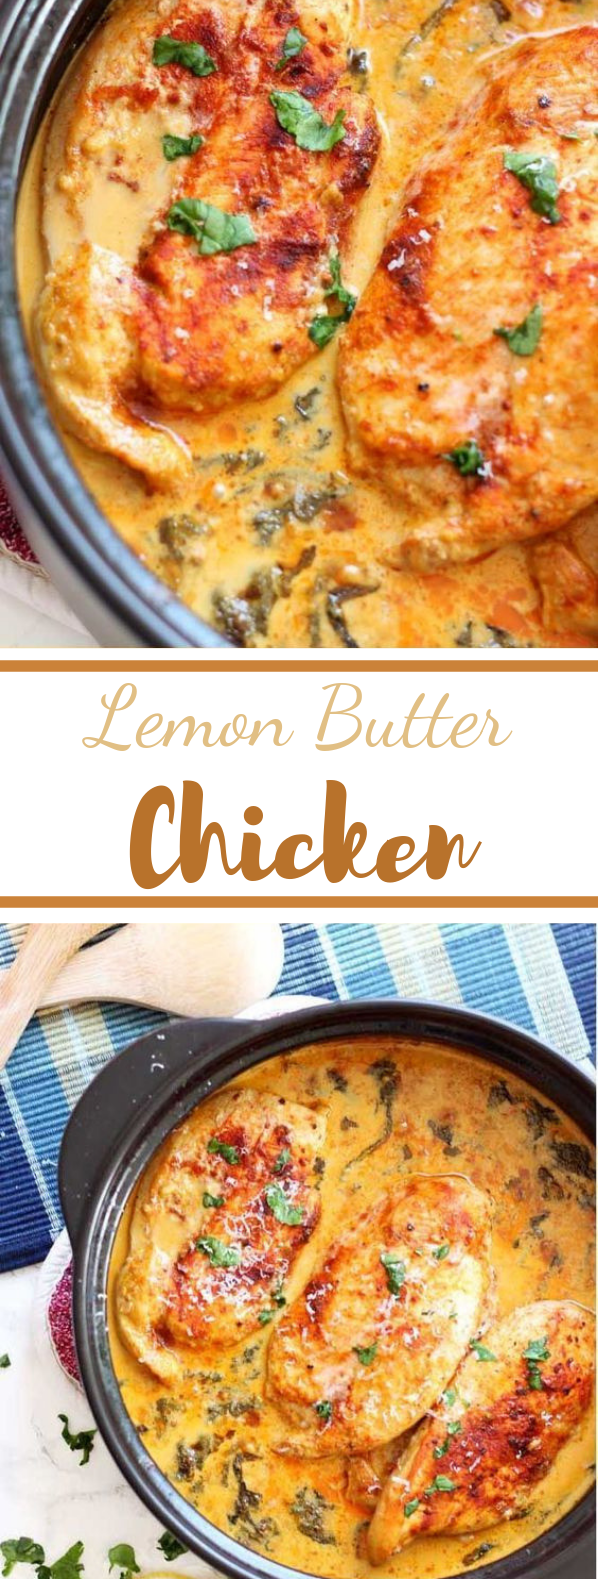 Lemon Butter Chicken #dinner #chicken